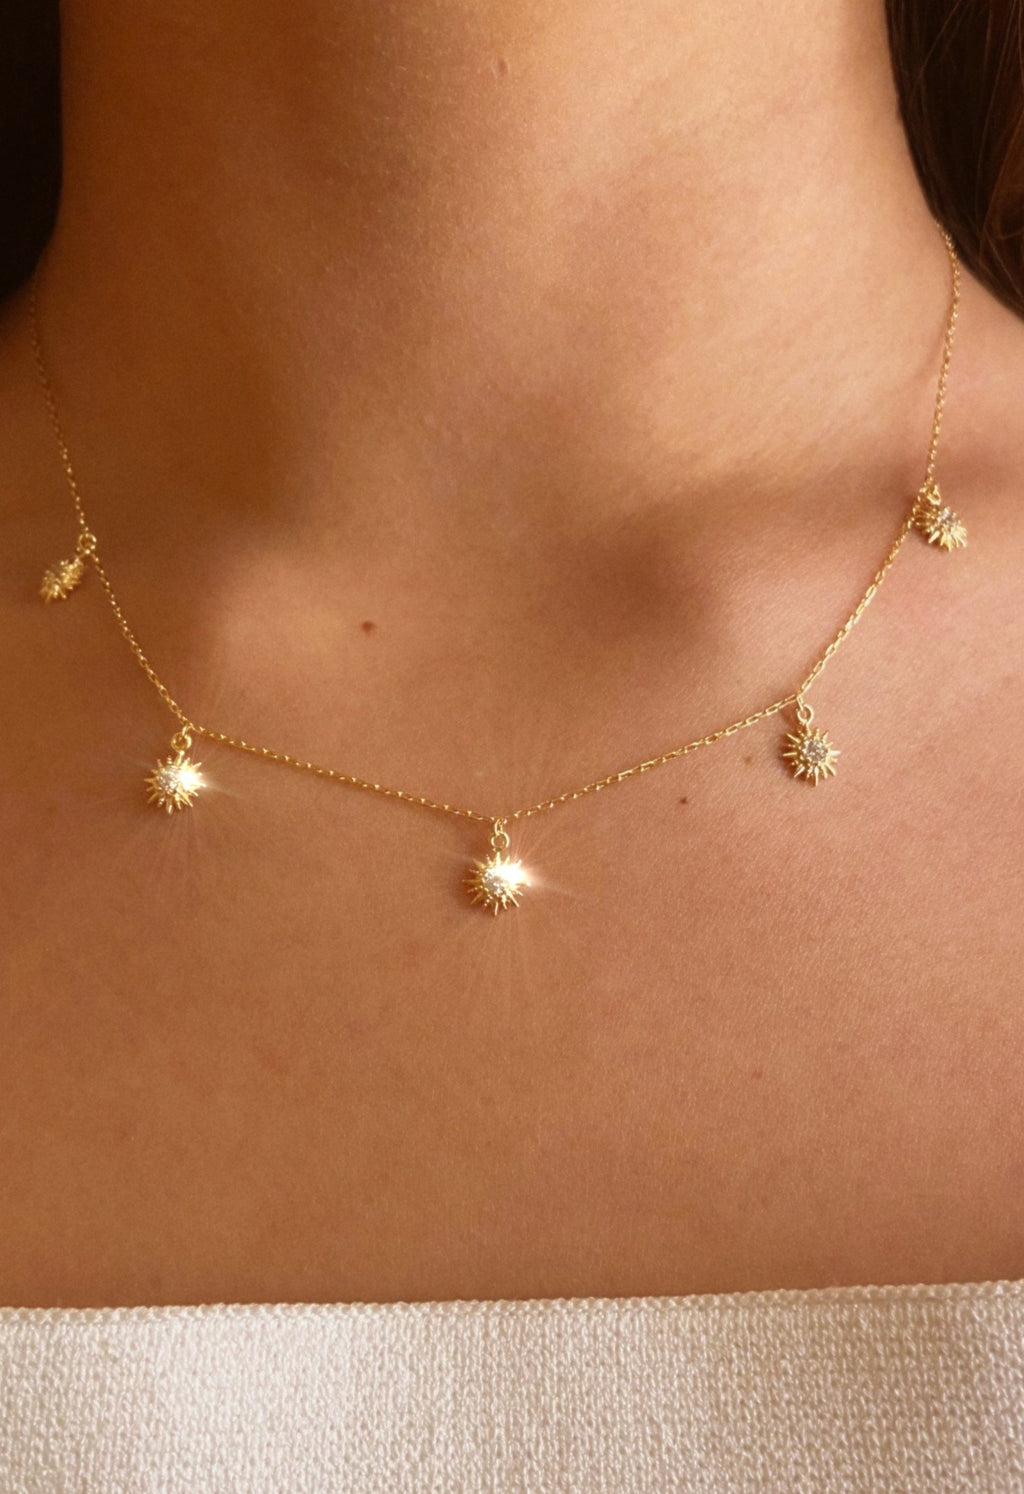 14K Gold Vermeil Starburst Charm Necklace